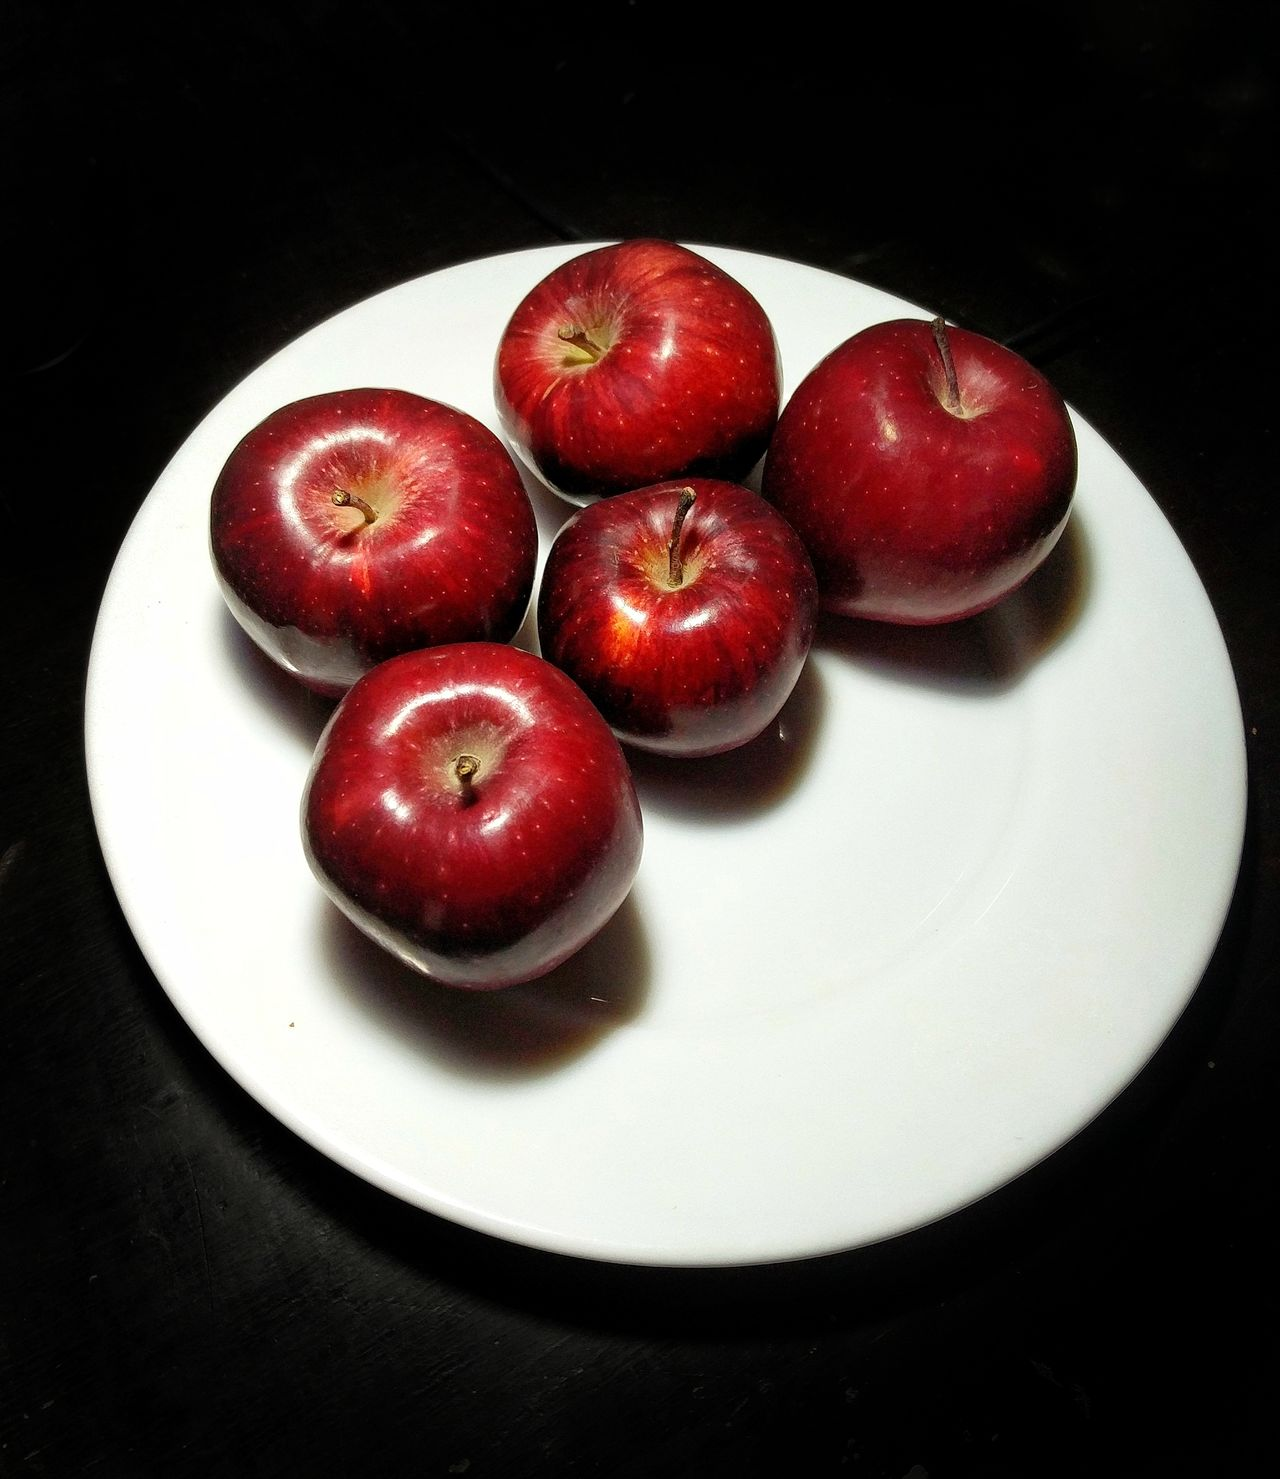 Beautifully Organized Red Freshness Plate Food Fruit Ready-to-eat Healthy Eating Black Background First Eyeem Photo Food And Drink No People Indoors  Close-up Day New Talent This Week New Talent Popular Popular Photos